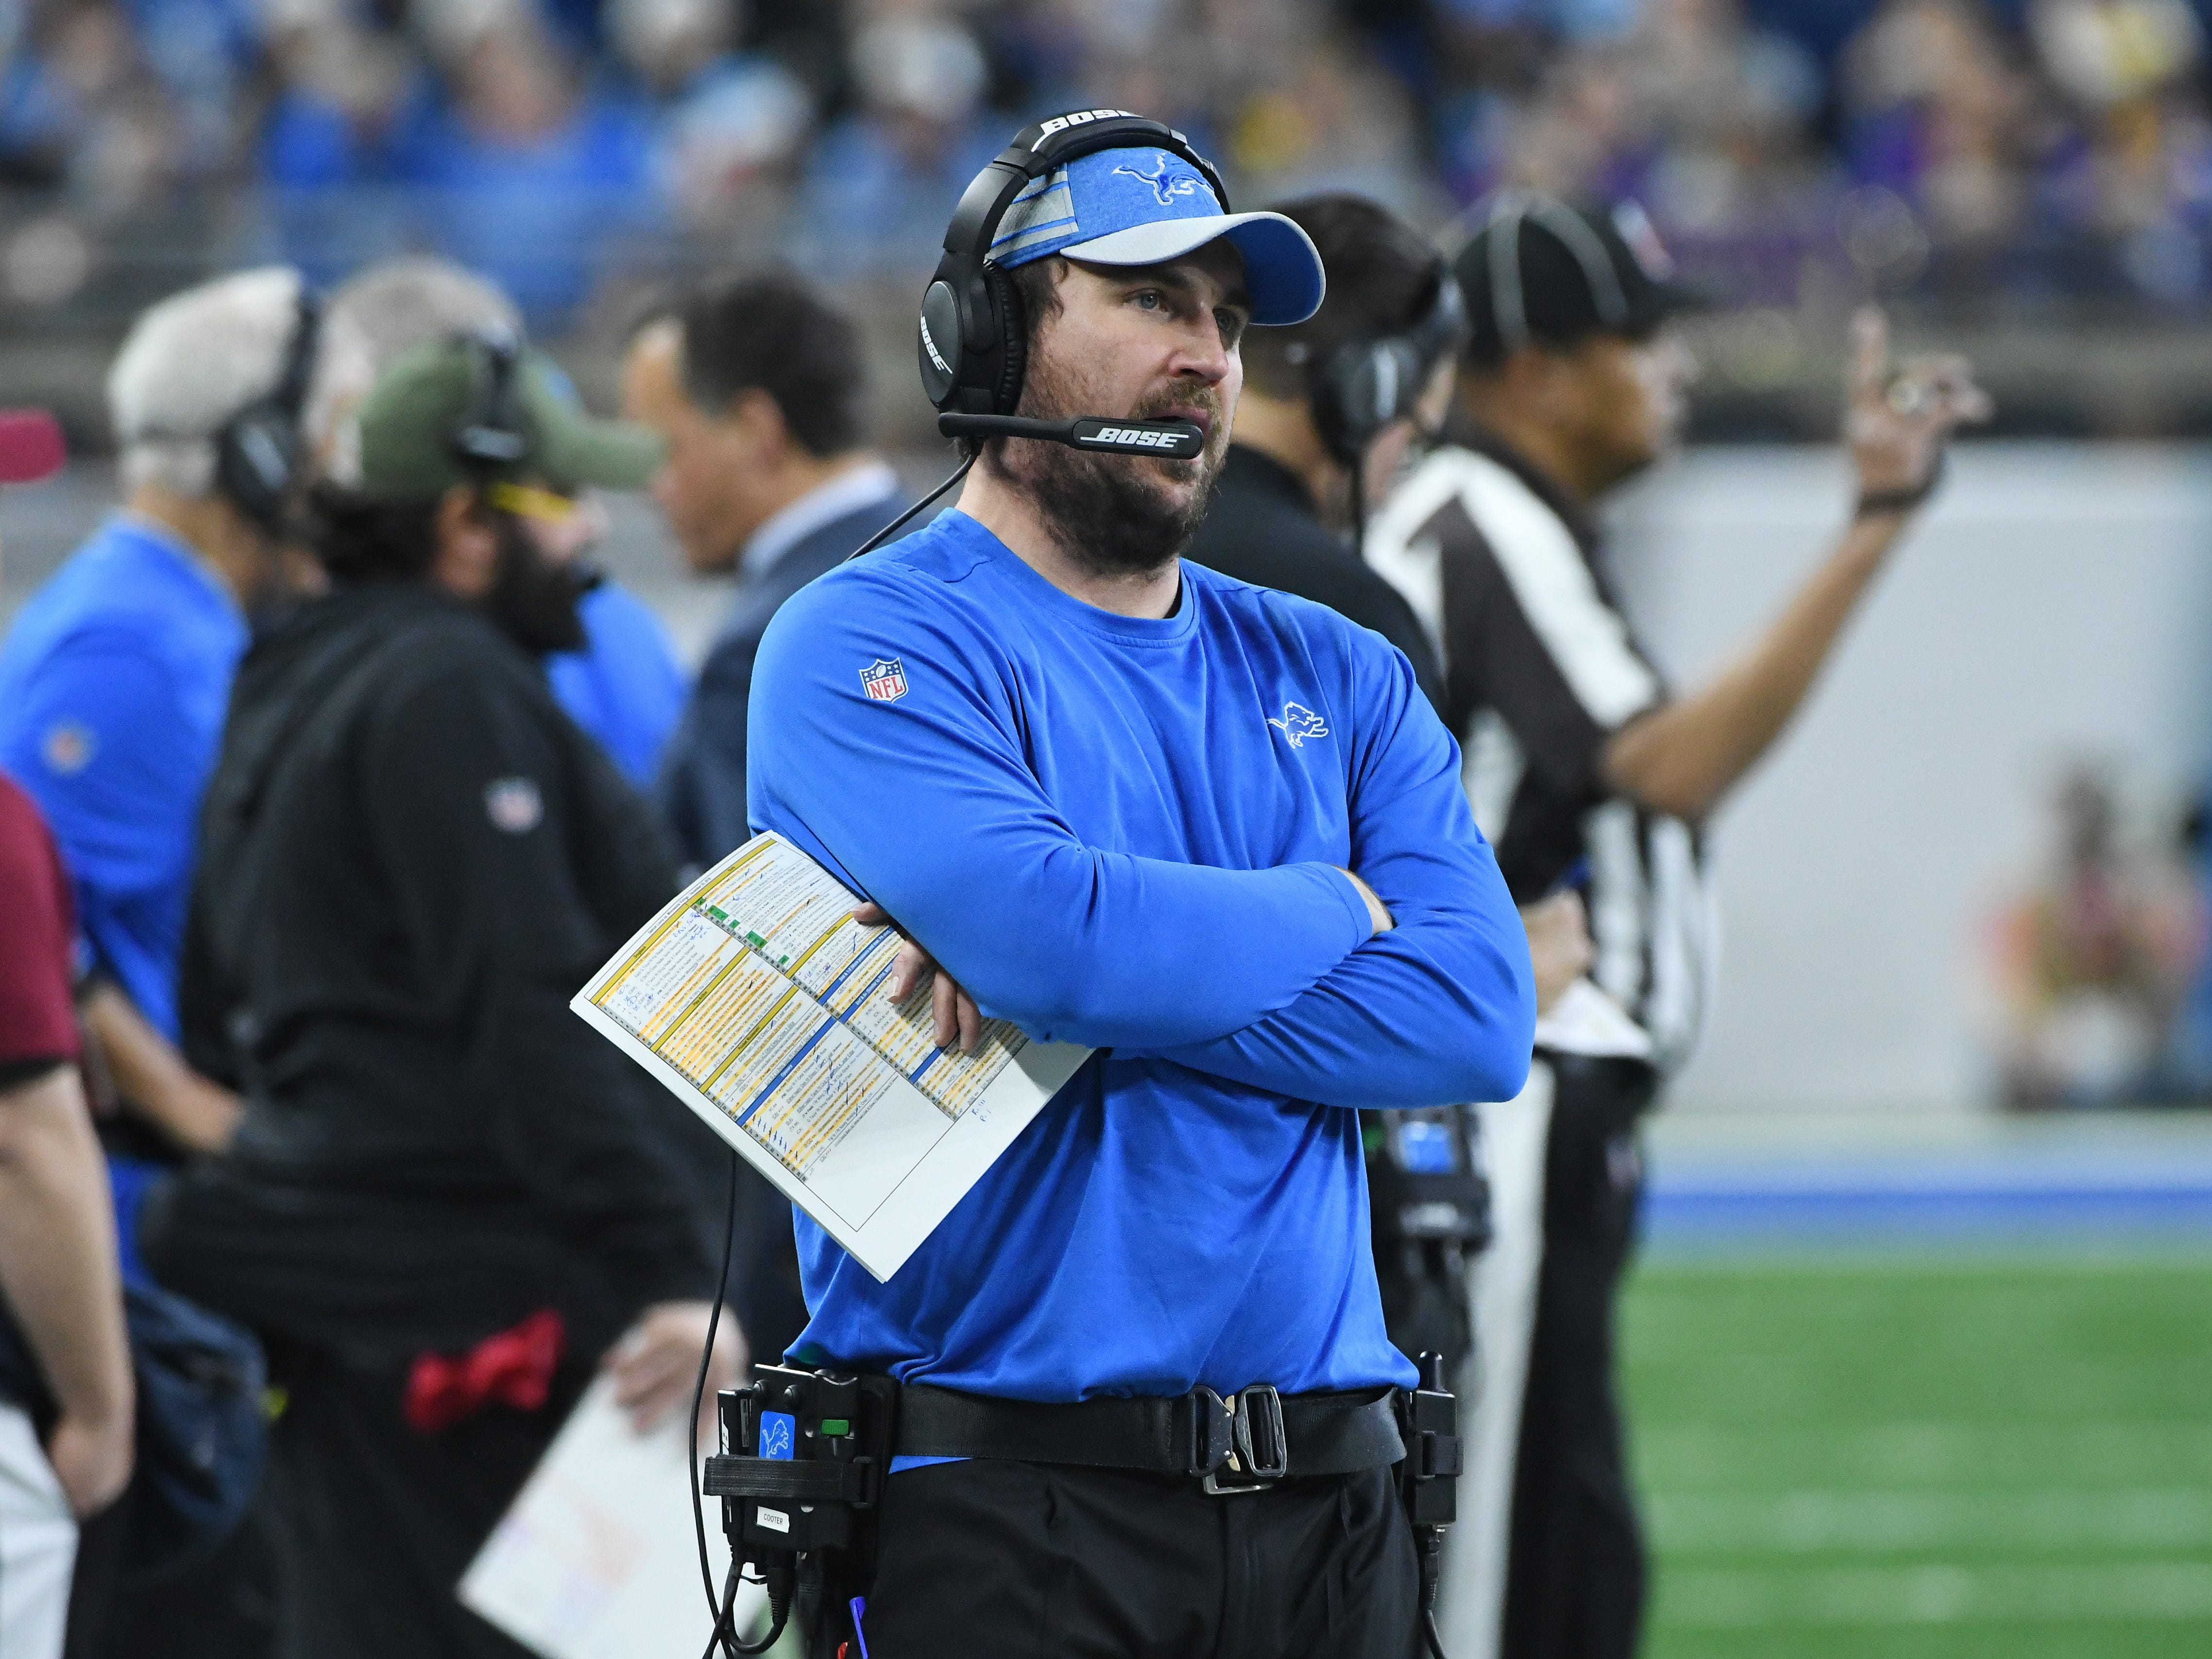 Lions offensive coordinator Jim Bob Cooter on the sidelines in the second quarter.